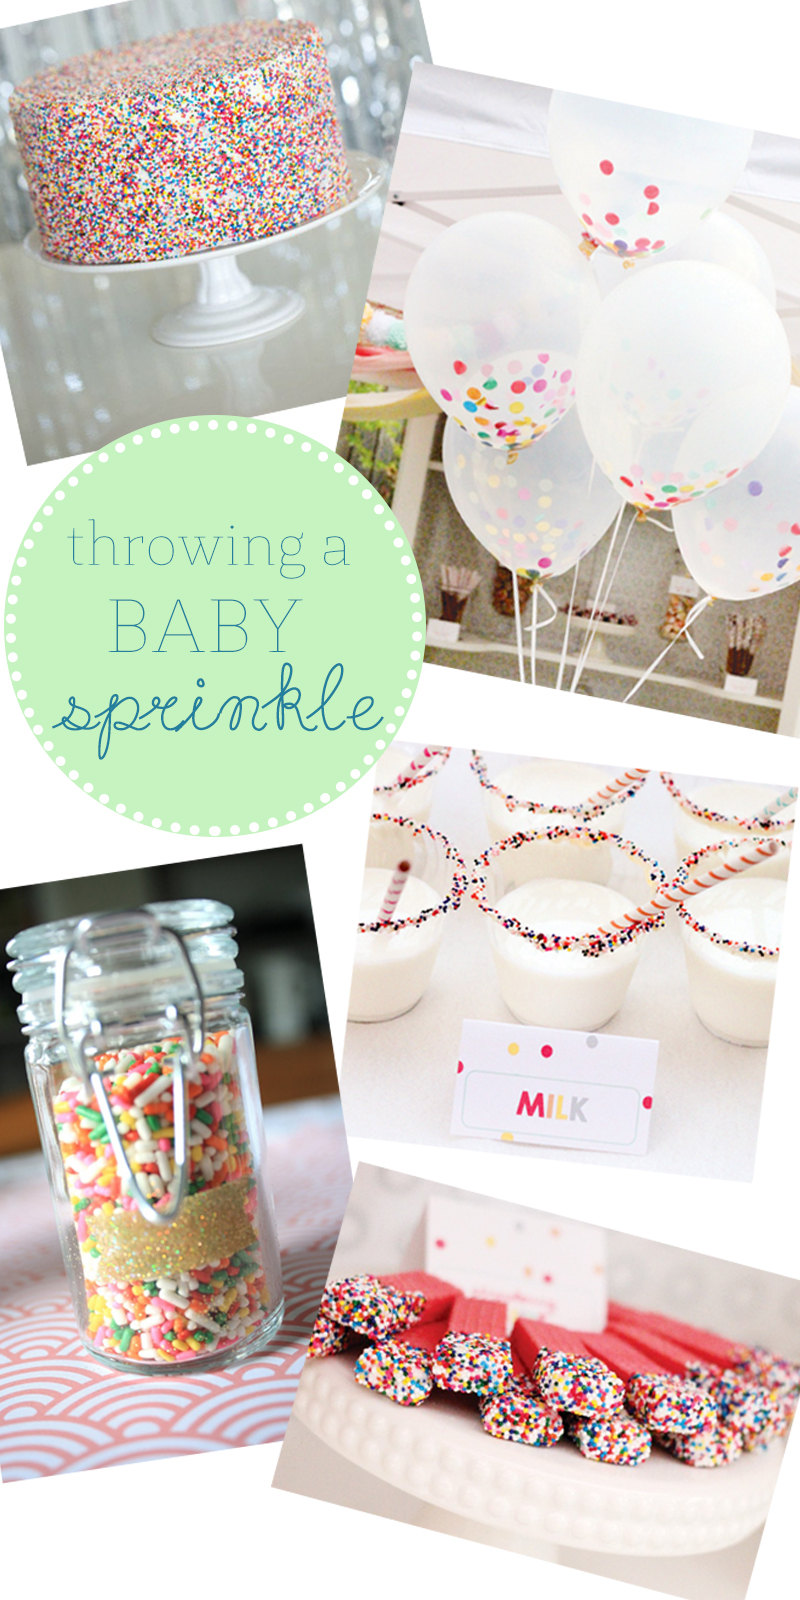 Wondering how to plan your baby sprinkle? Here are several ideas that celebrate the baby-to-be without all the pomp and circumstance of your first baby's shower.